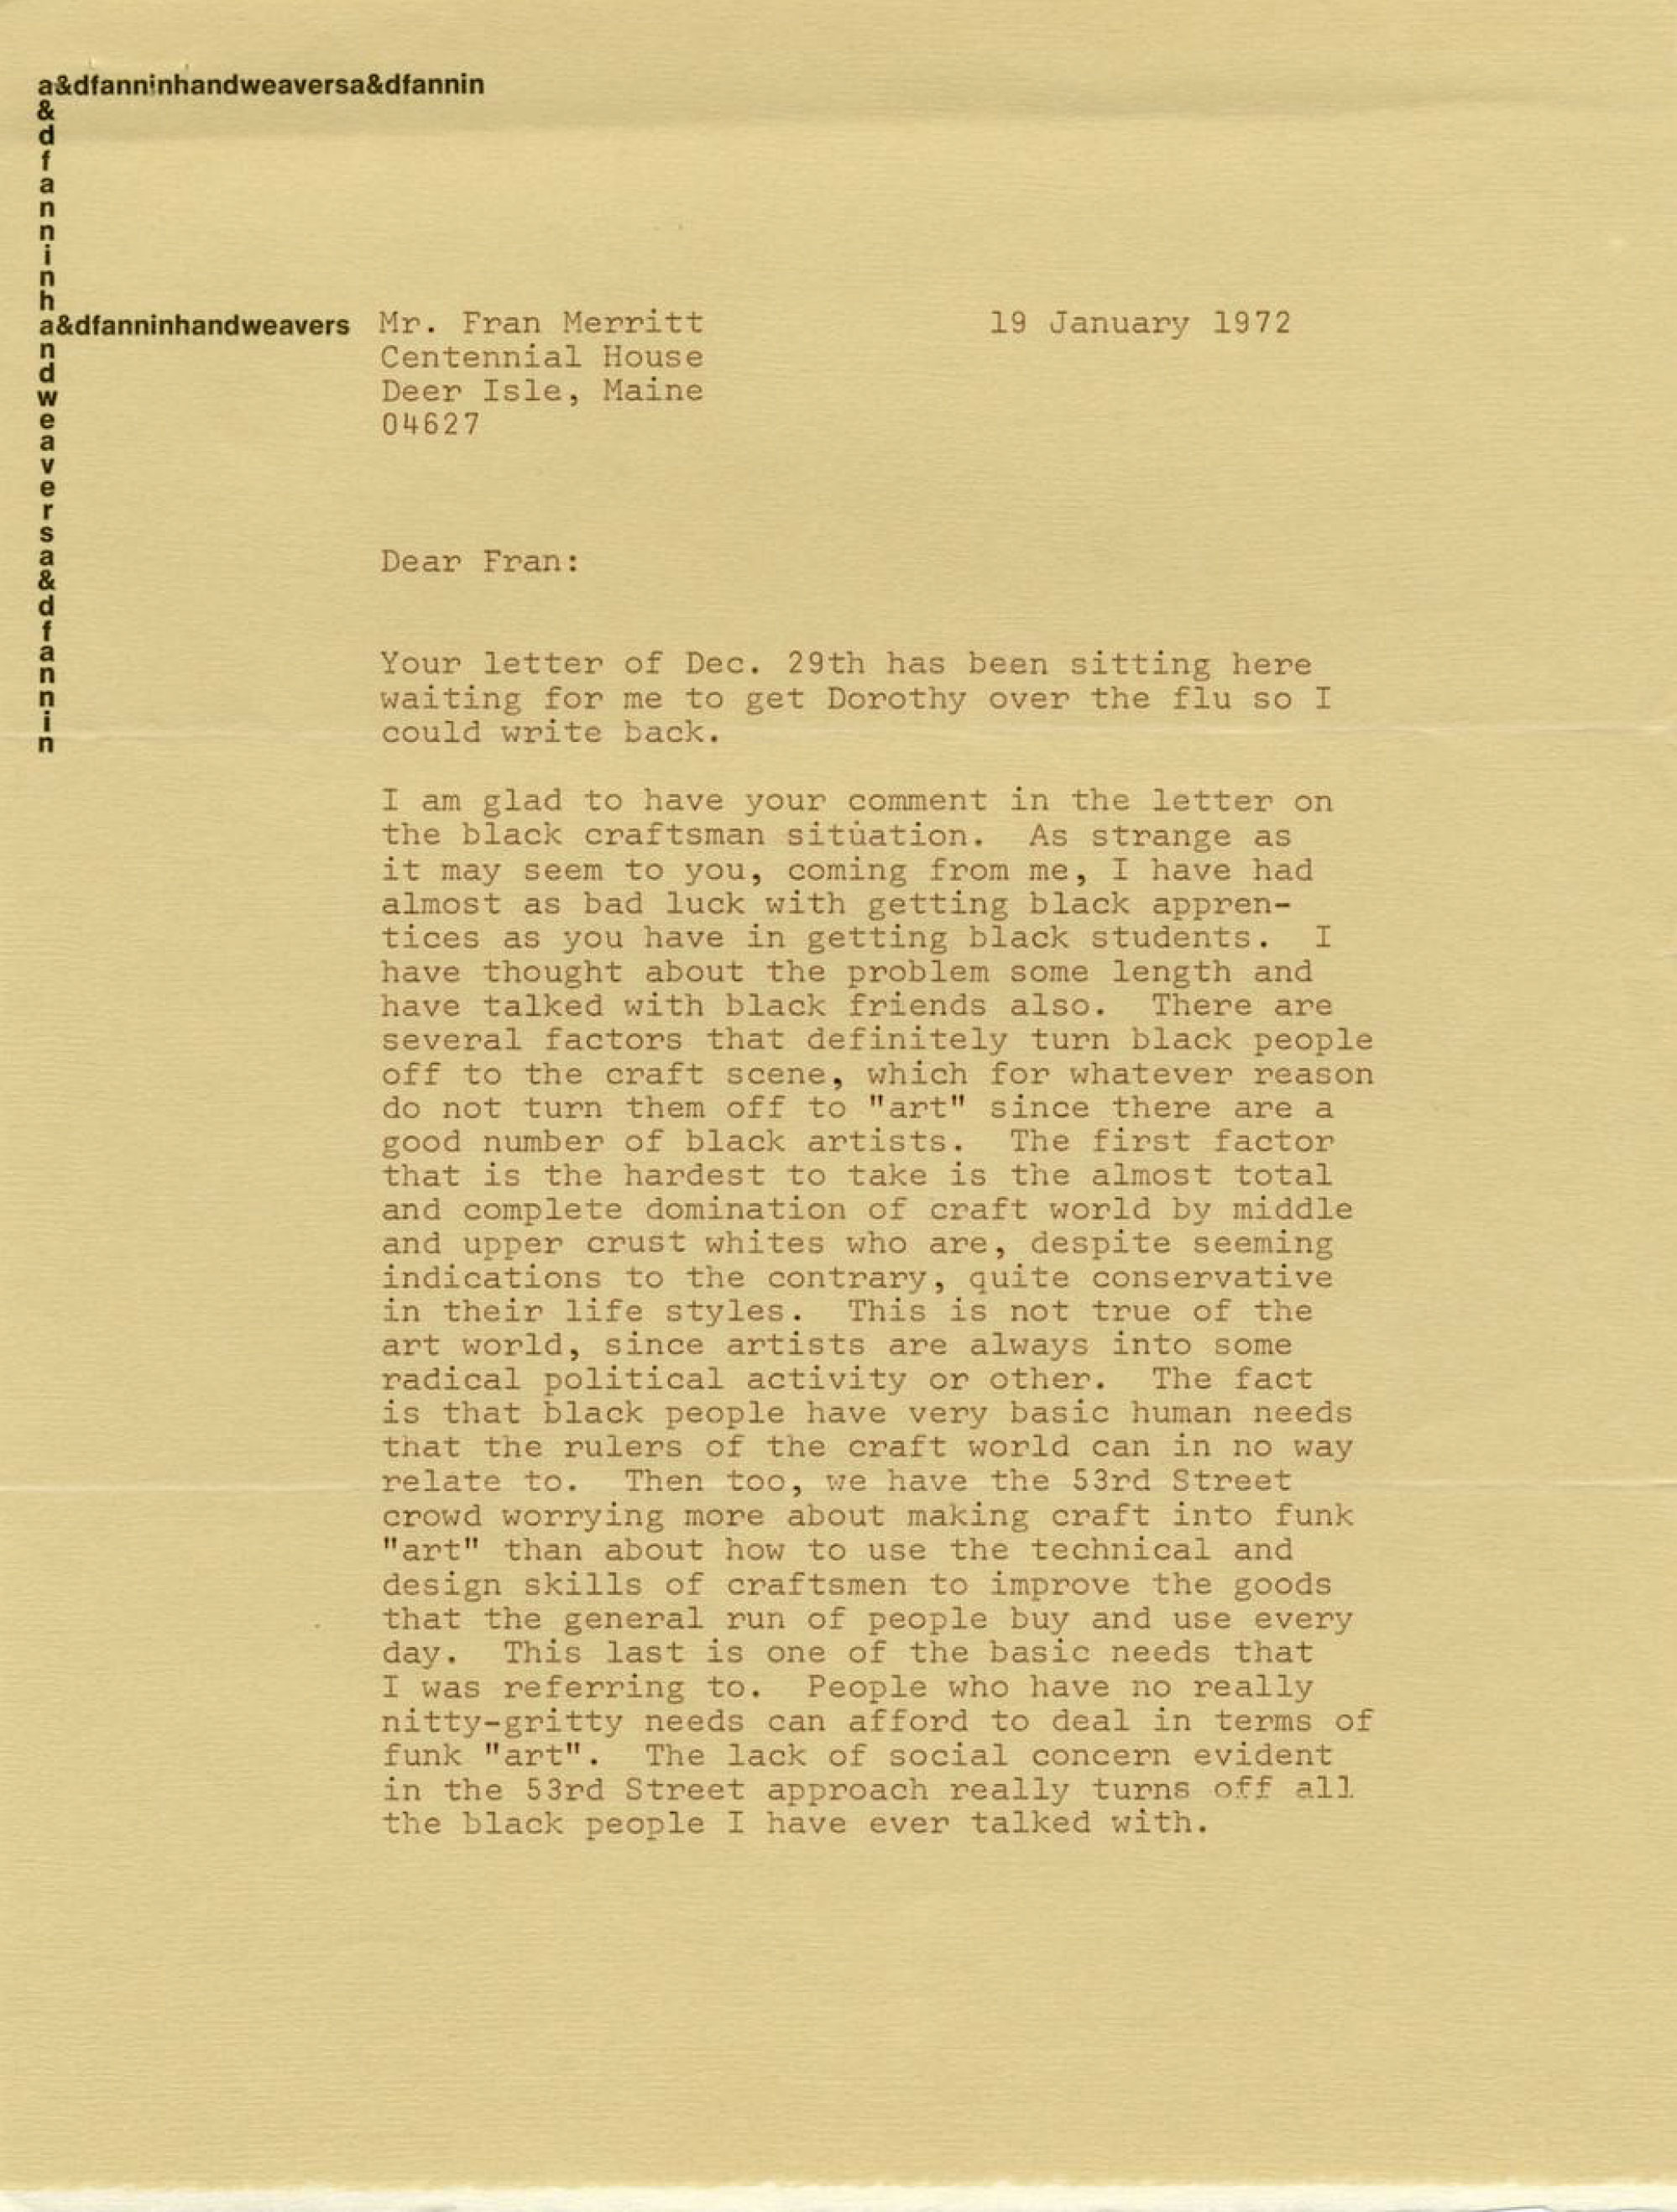 scan of a letter on yellowed paper, seemingly typed on a typewriter